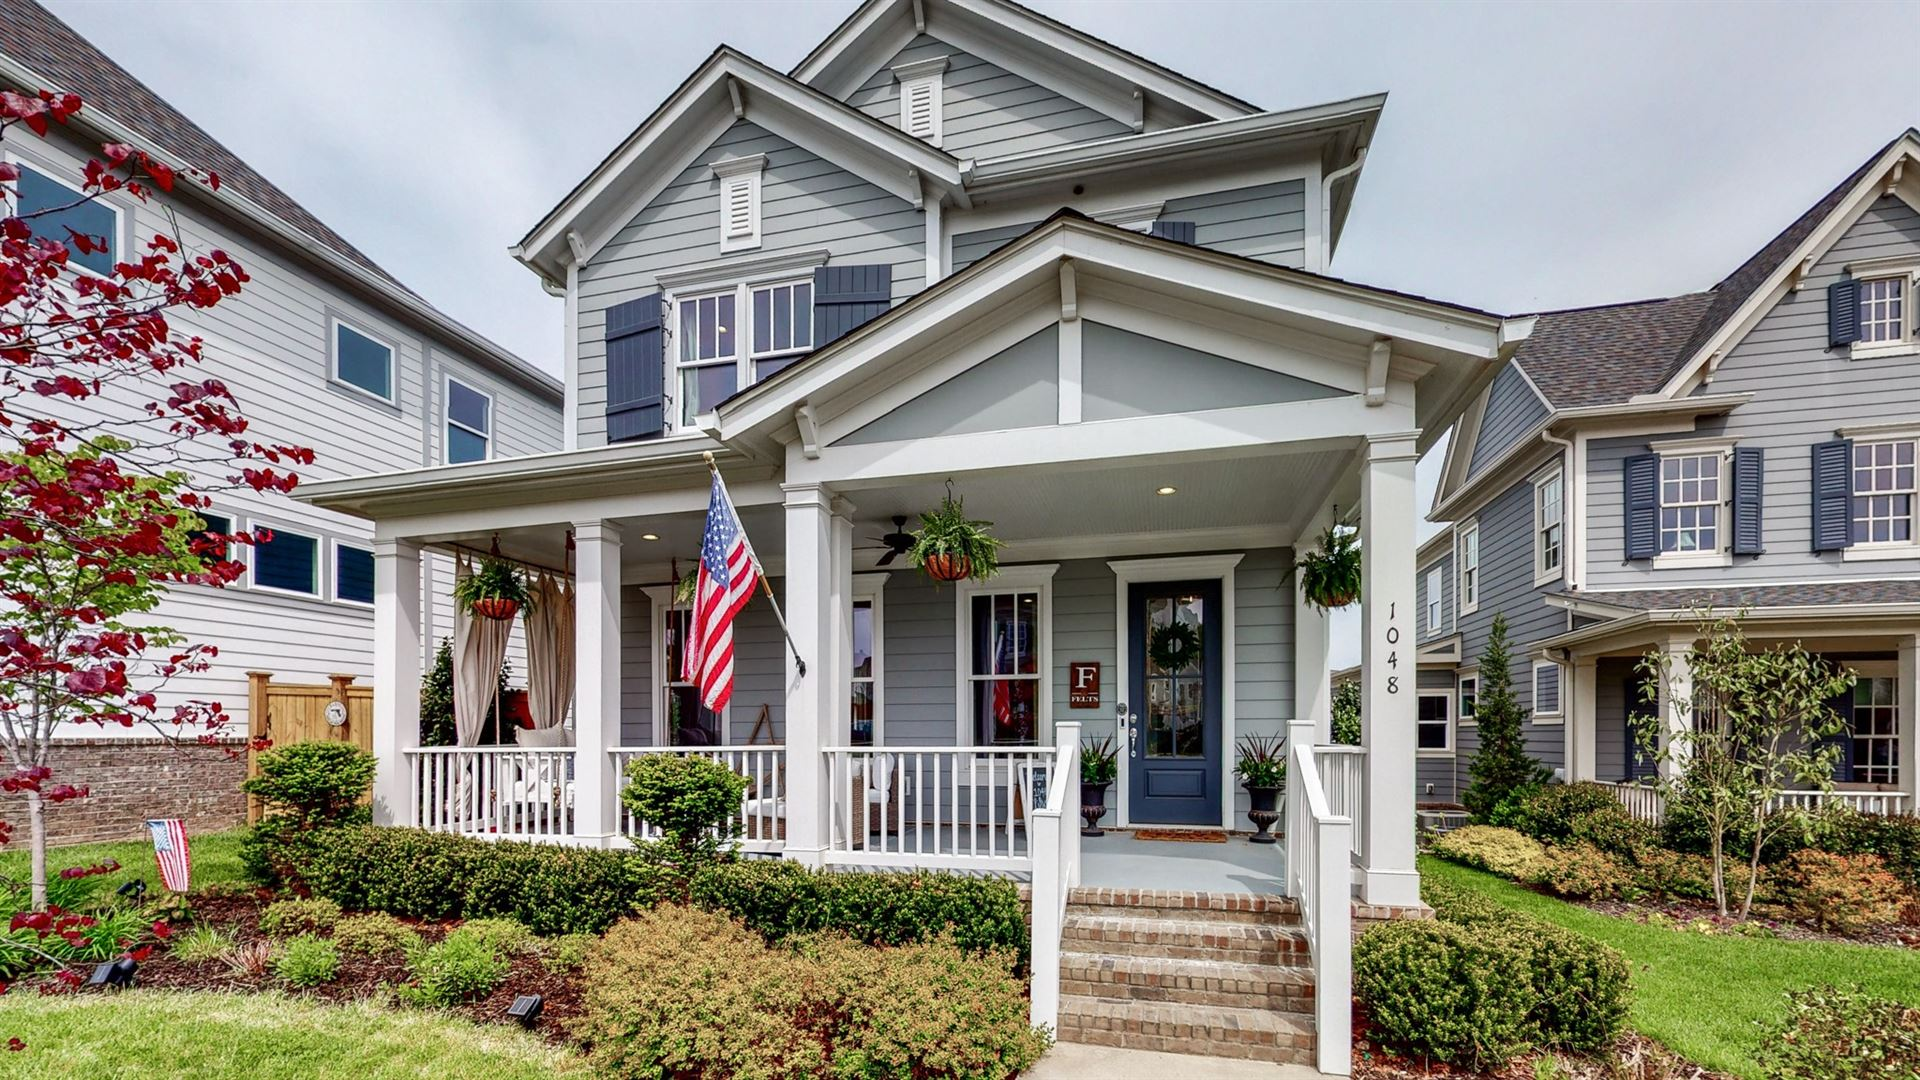 Photo of 1048 Clifton St, Franklin, TN 37064 (MLS # 2143470)